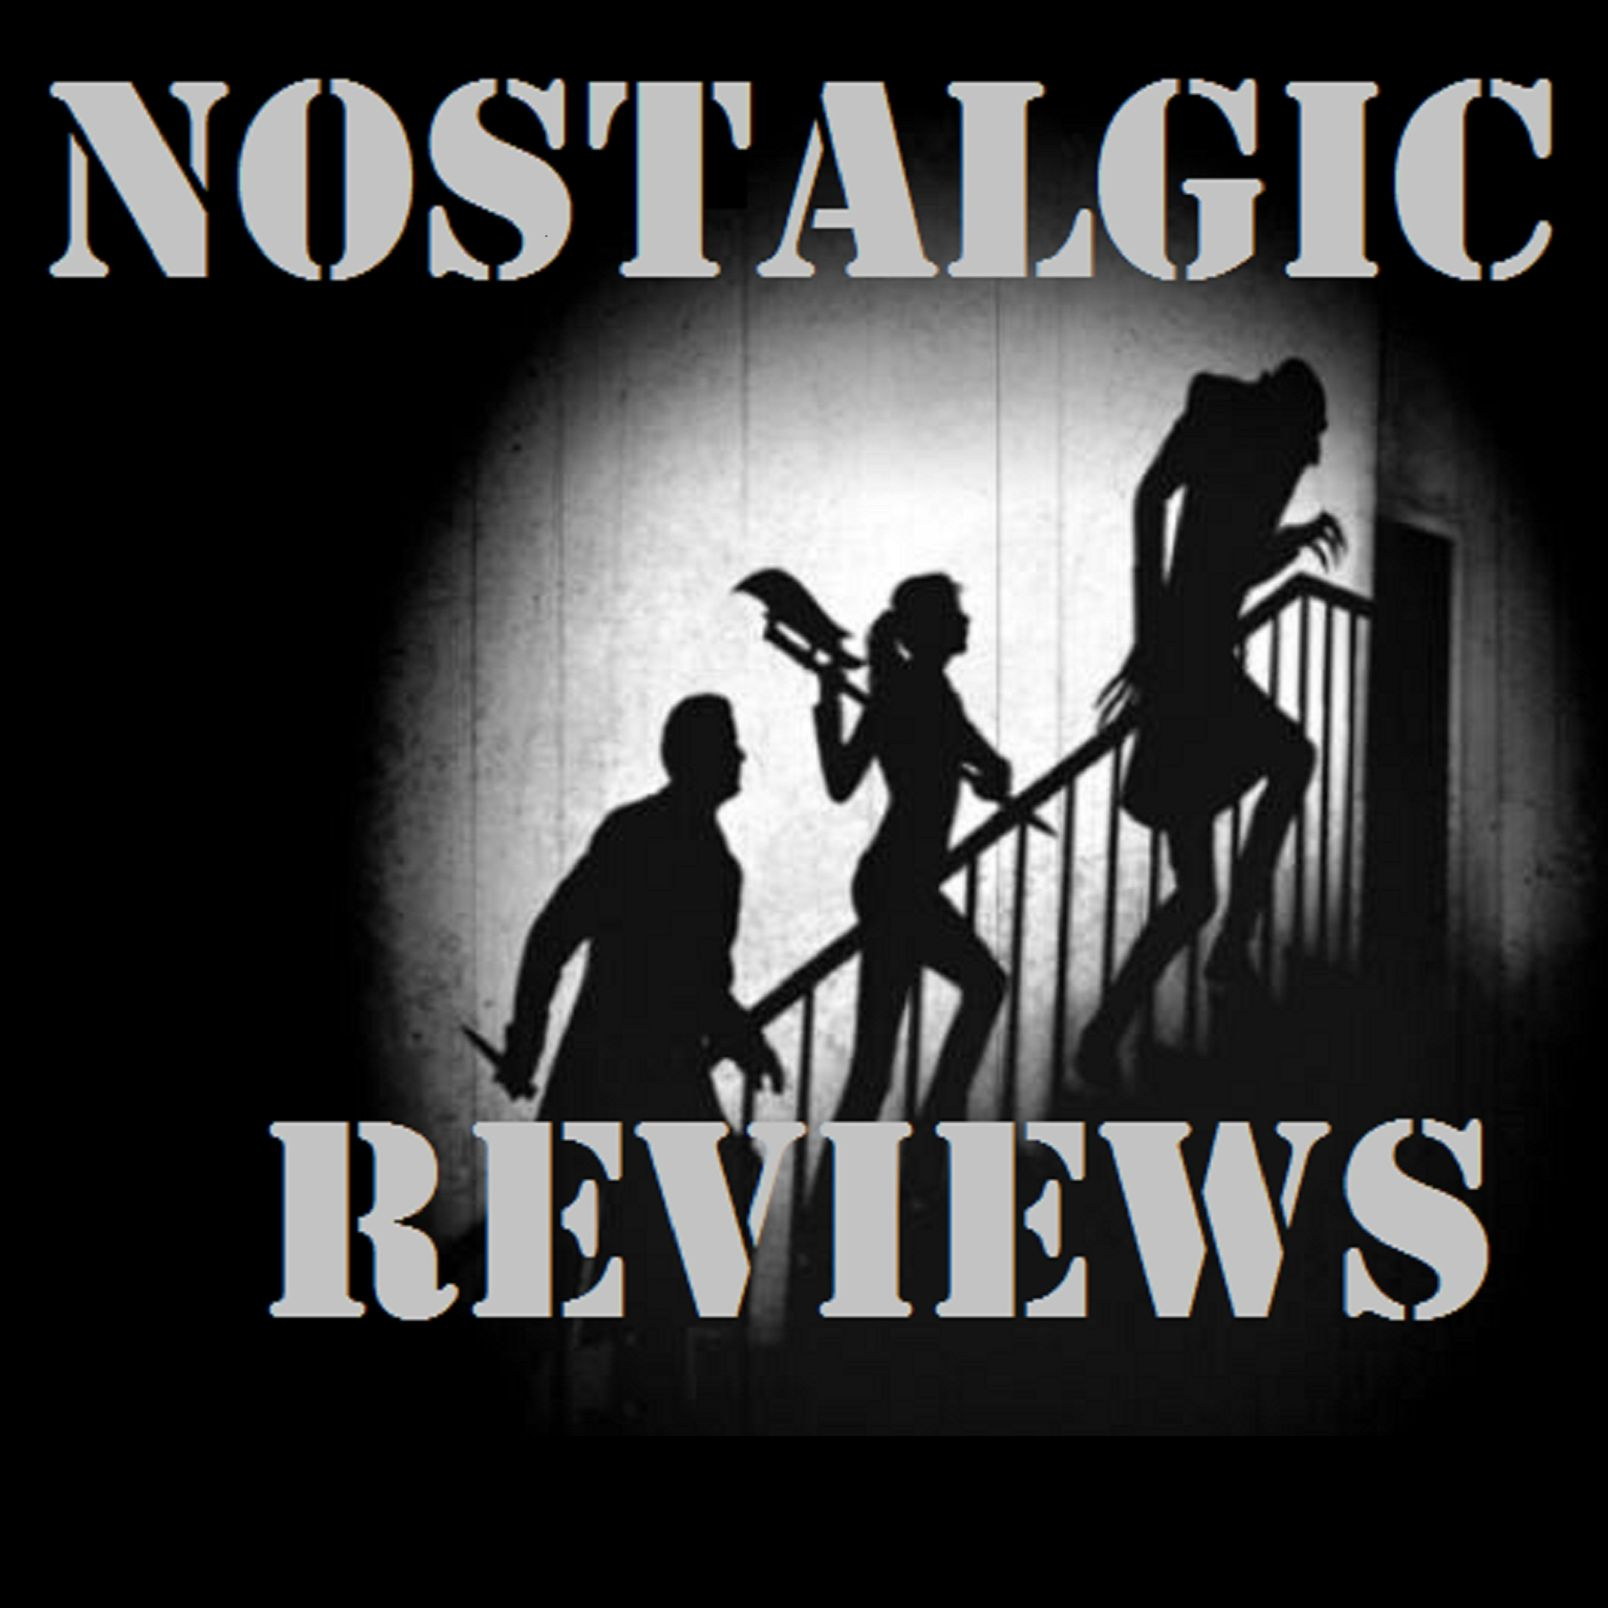 Nostalgic Reviews